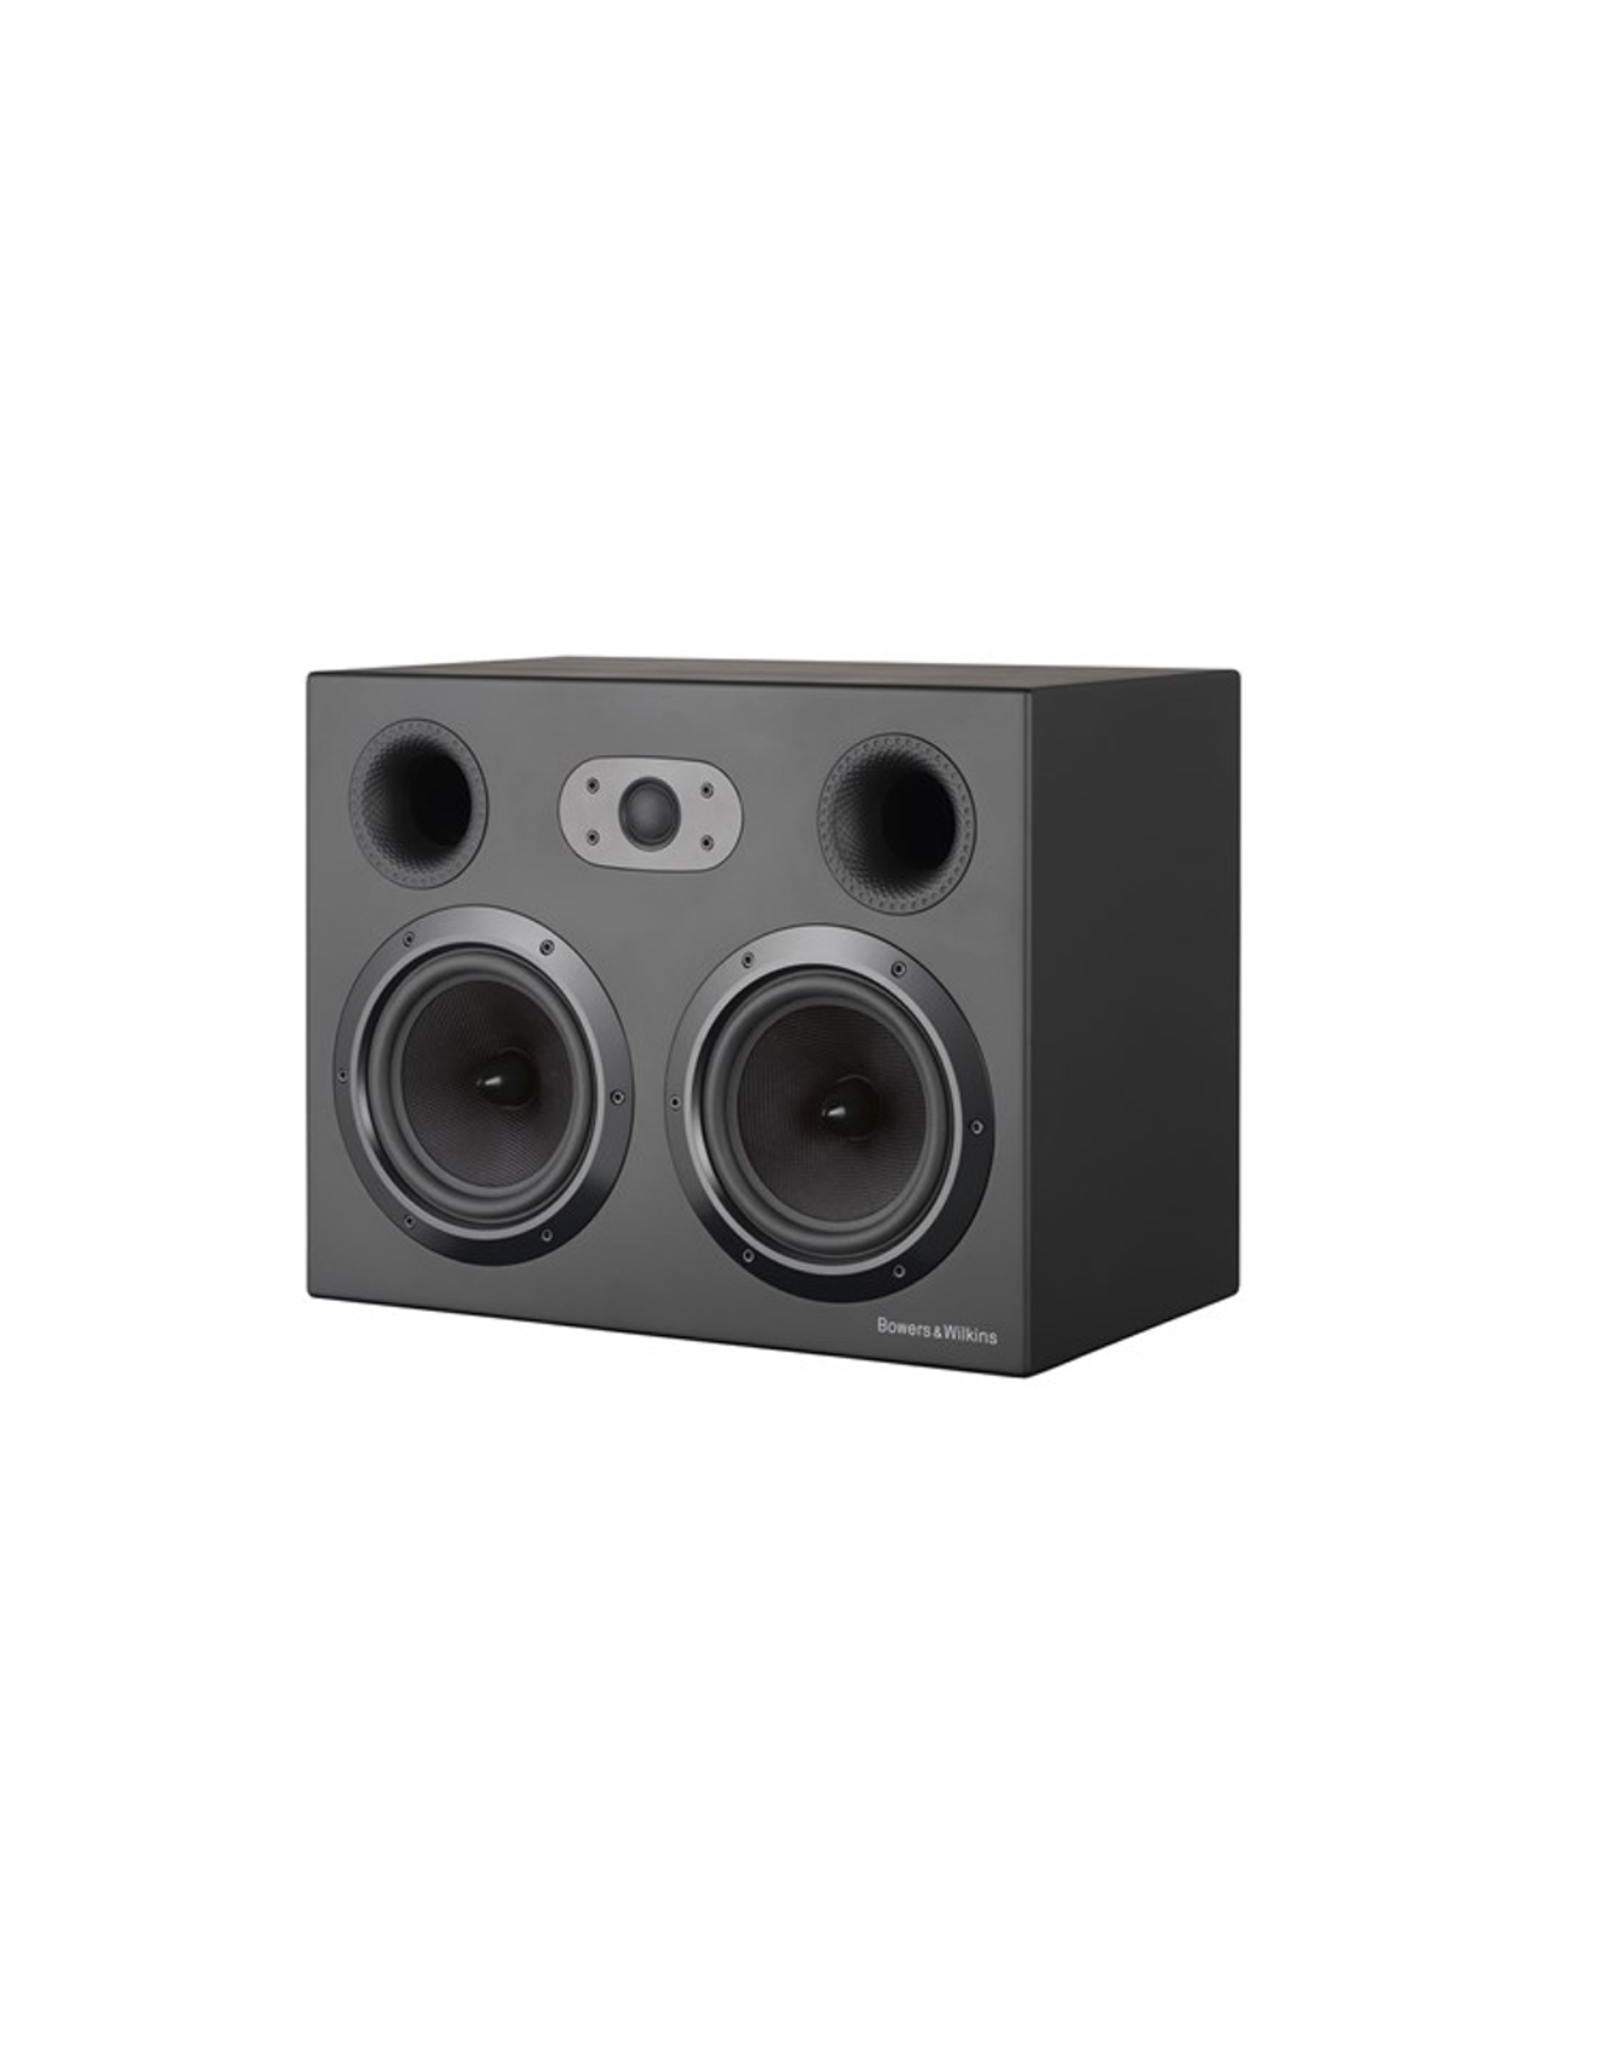 BOWERS & WILKINS B&W CT7.4 Custom Theatre speaker (single) BLACK